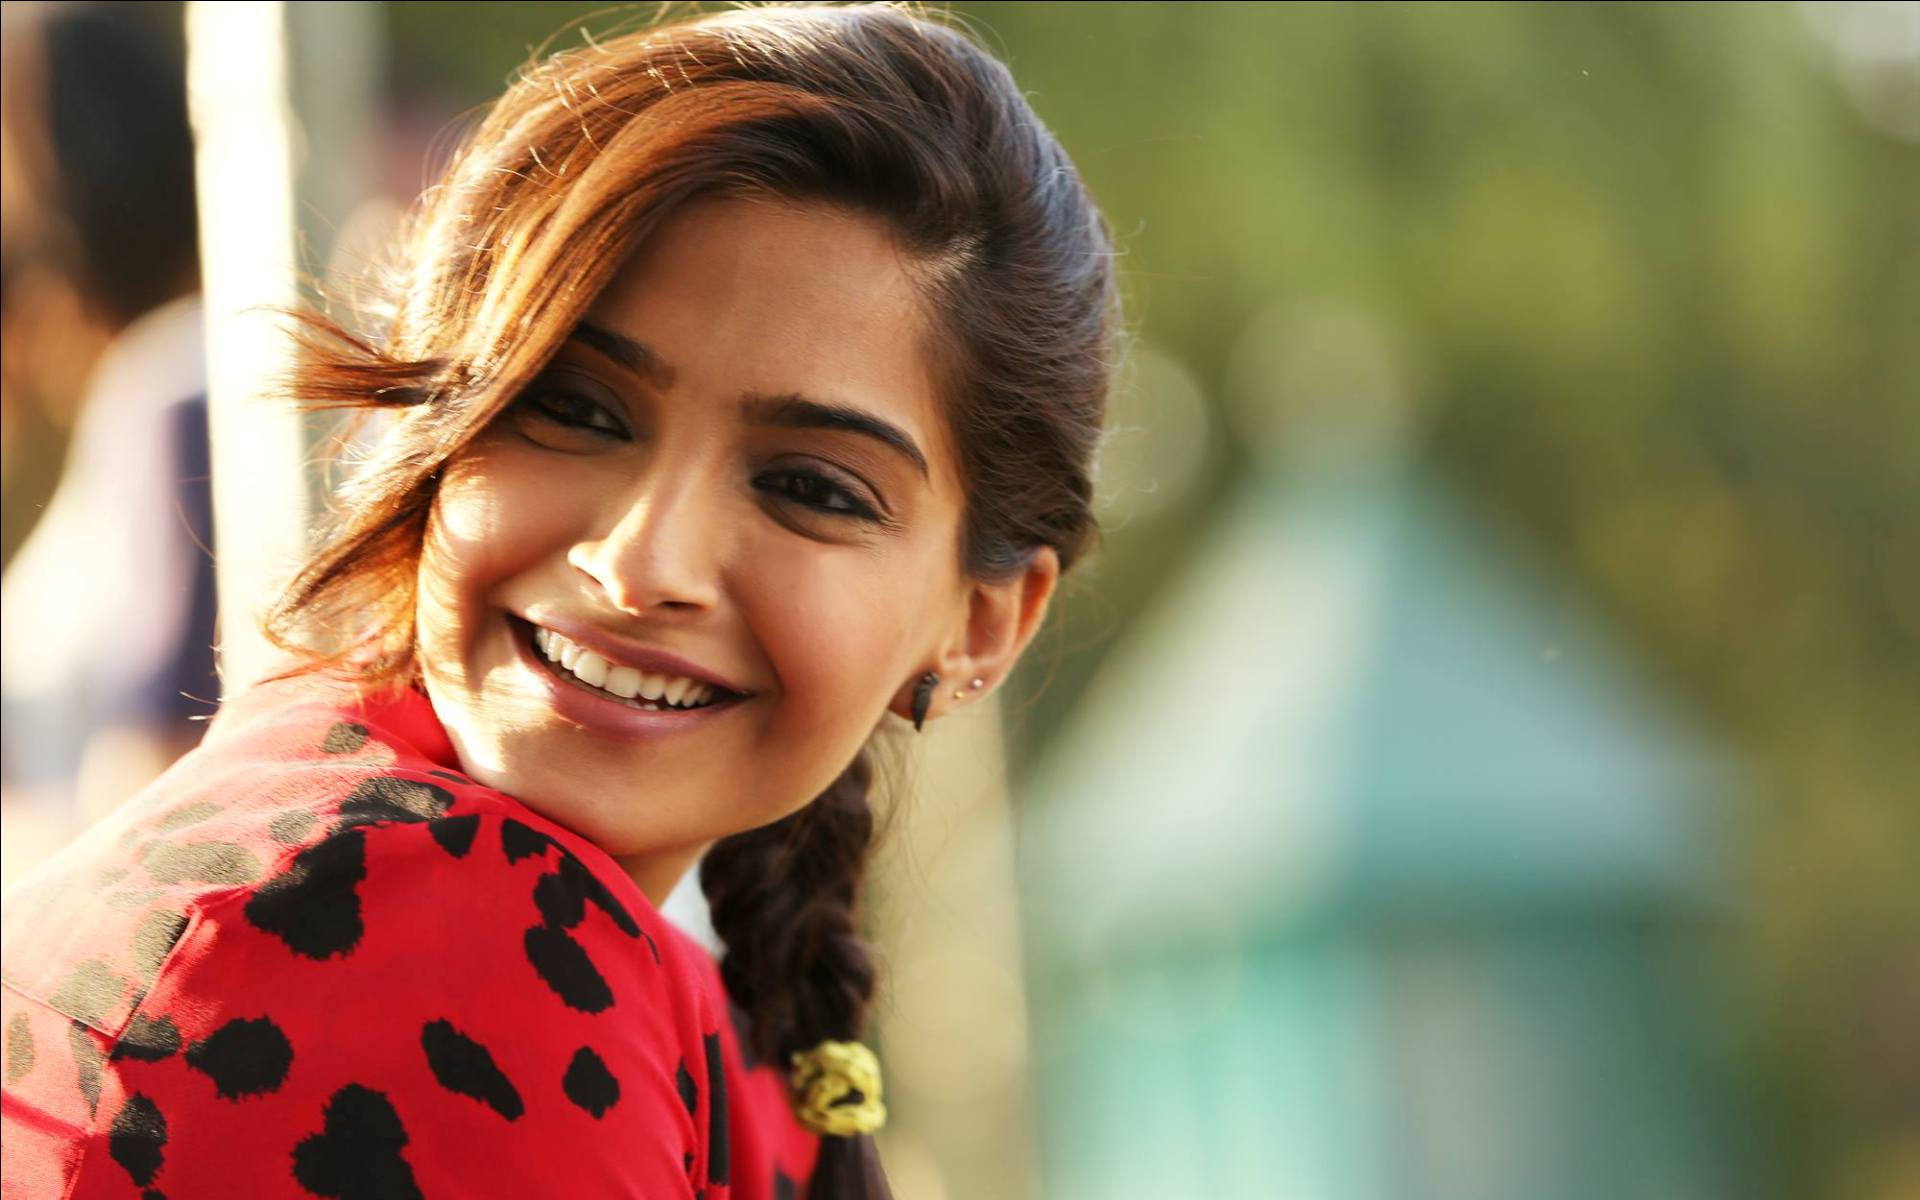 Hd wallpaper khubsurat - Sonam Kapoor Hd Wallpaper